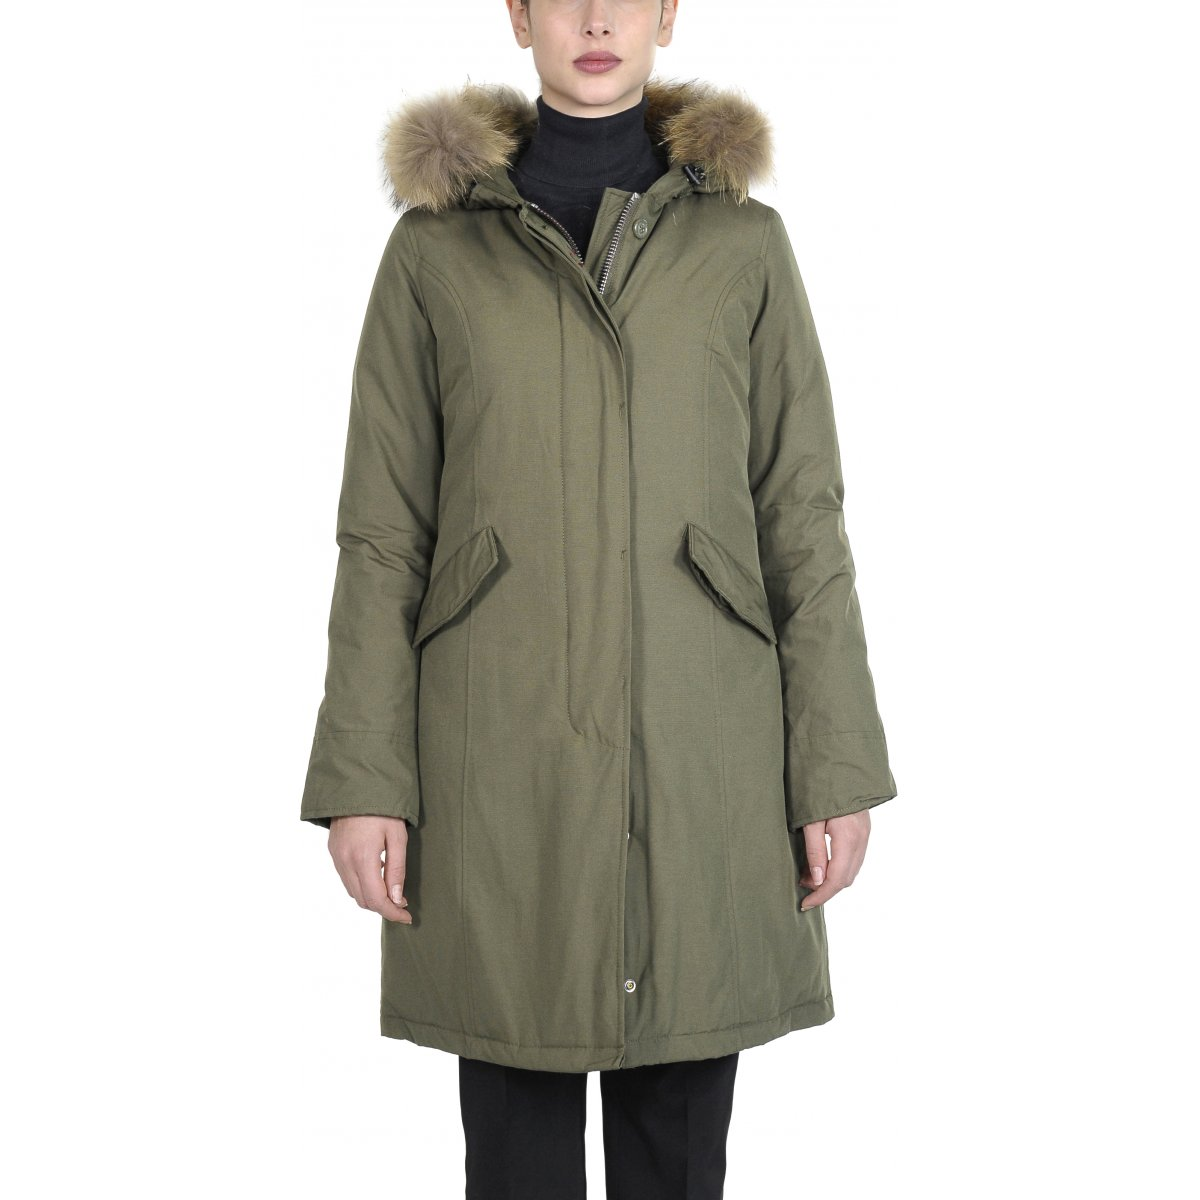 low priced fe3c5 10c59 Giacca Donna Fundy Bay Long - Classic Parkas Canadian Women